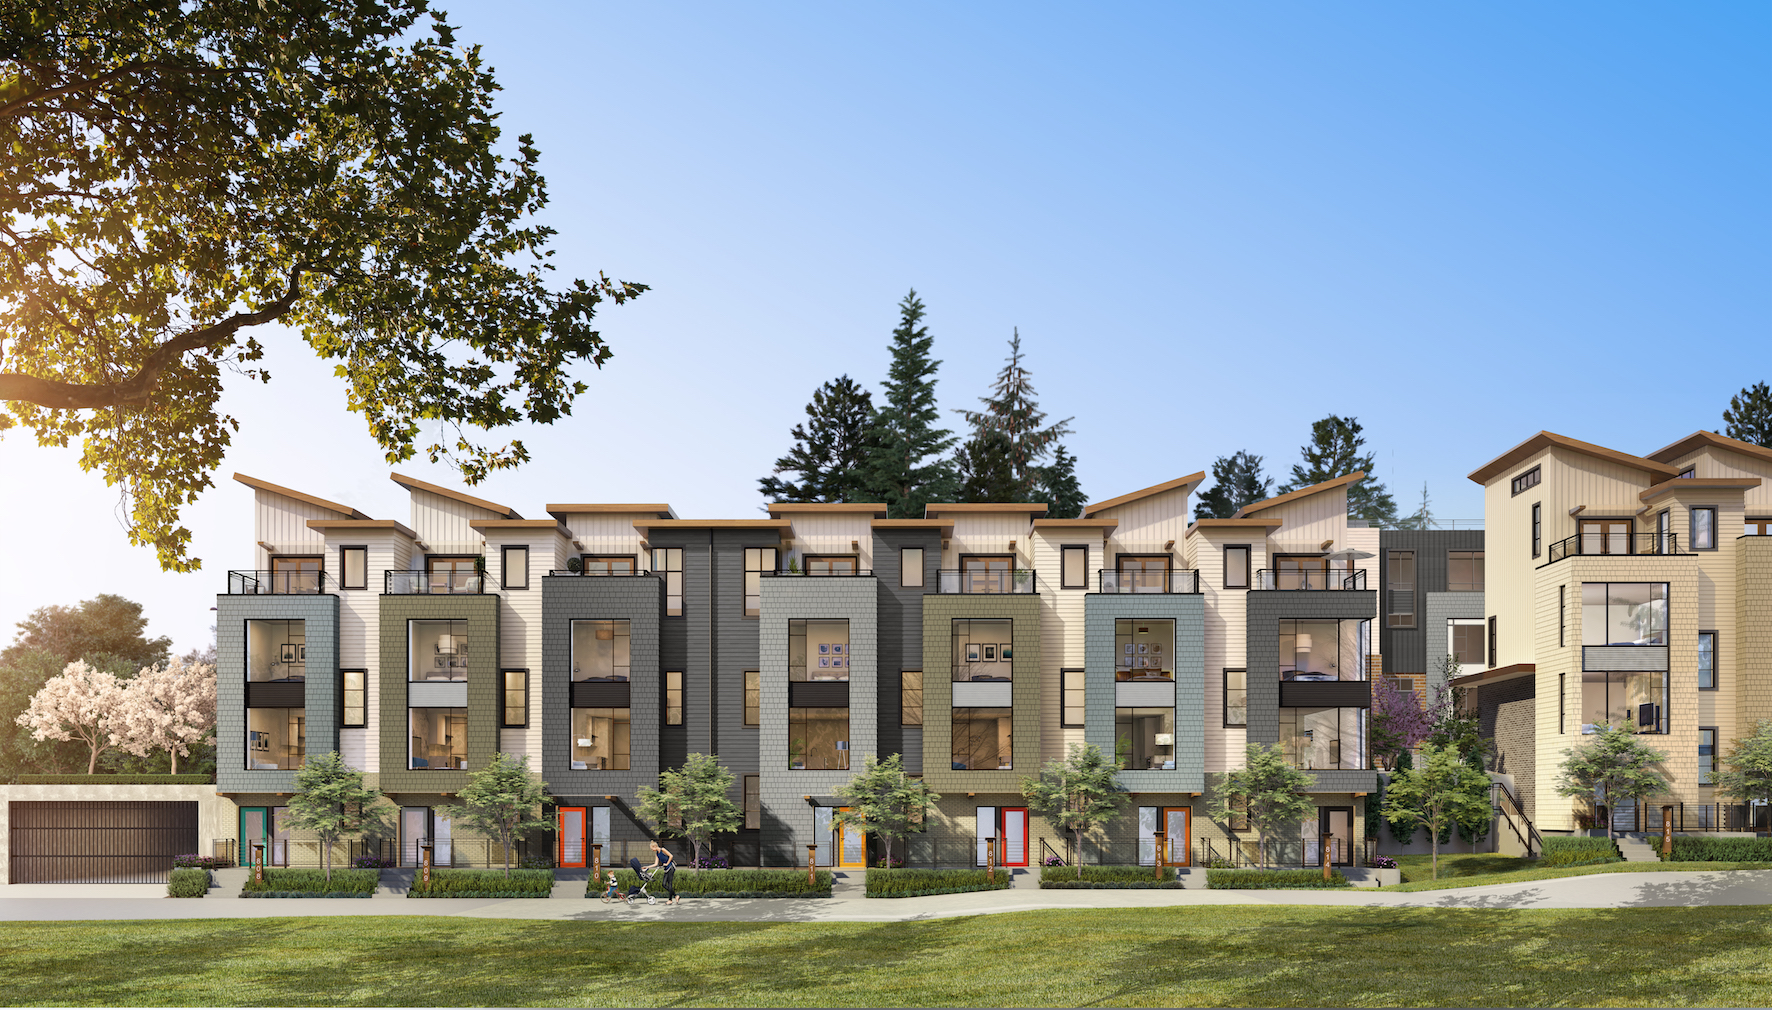 The Trails On Lower Lonsdale By Wall Financial – Plans, Prices, Availability